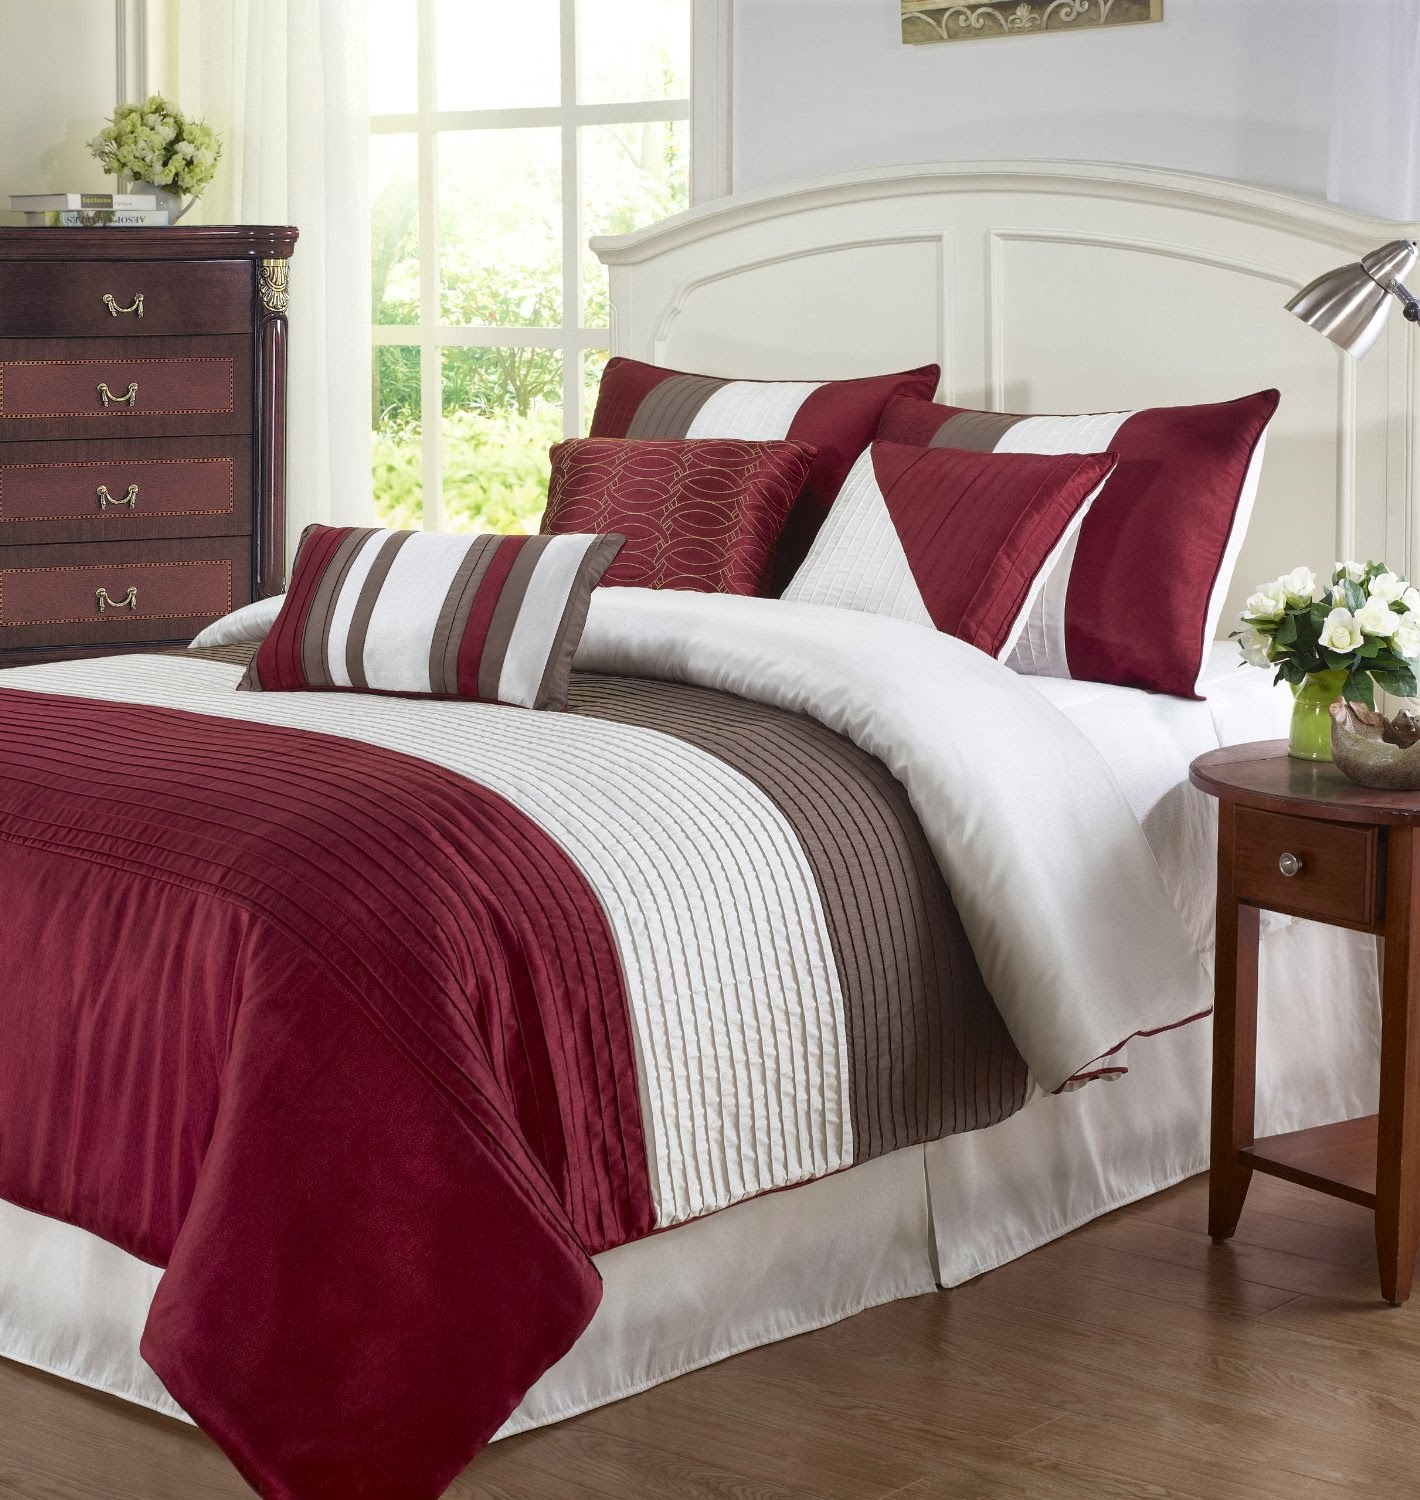 quilt designs bedding and set astounding photo comforter king burgundy sets stupendous burdy cream black